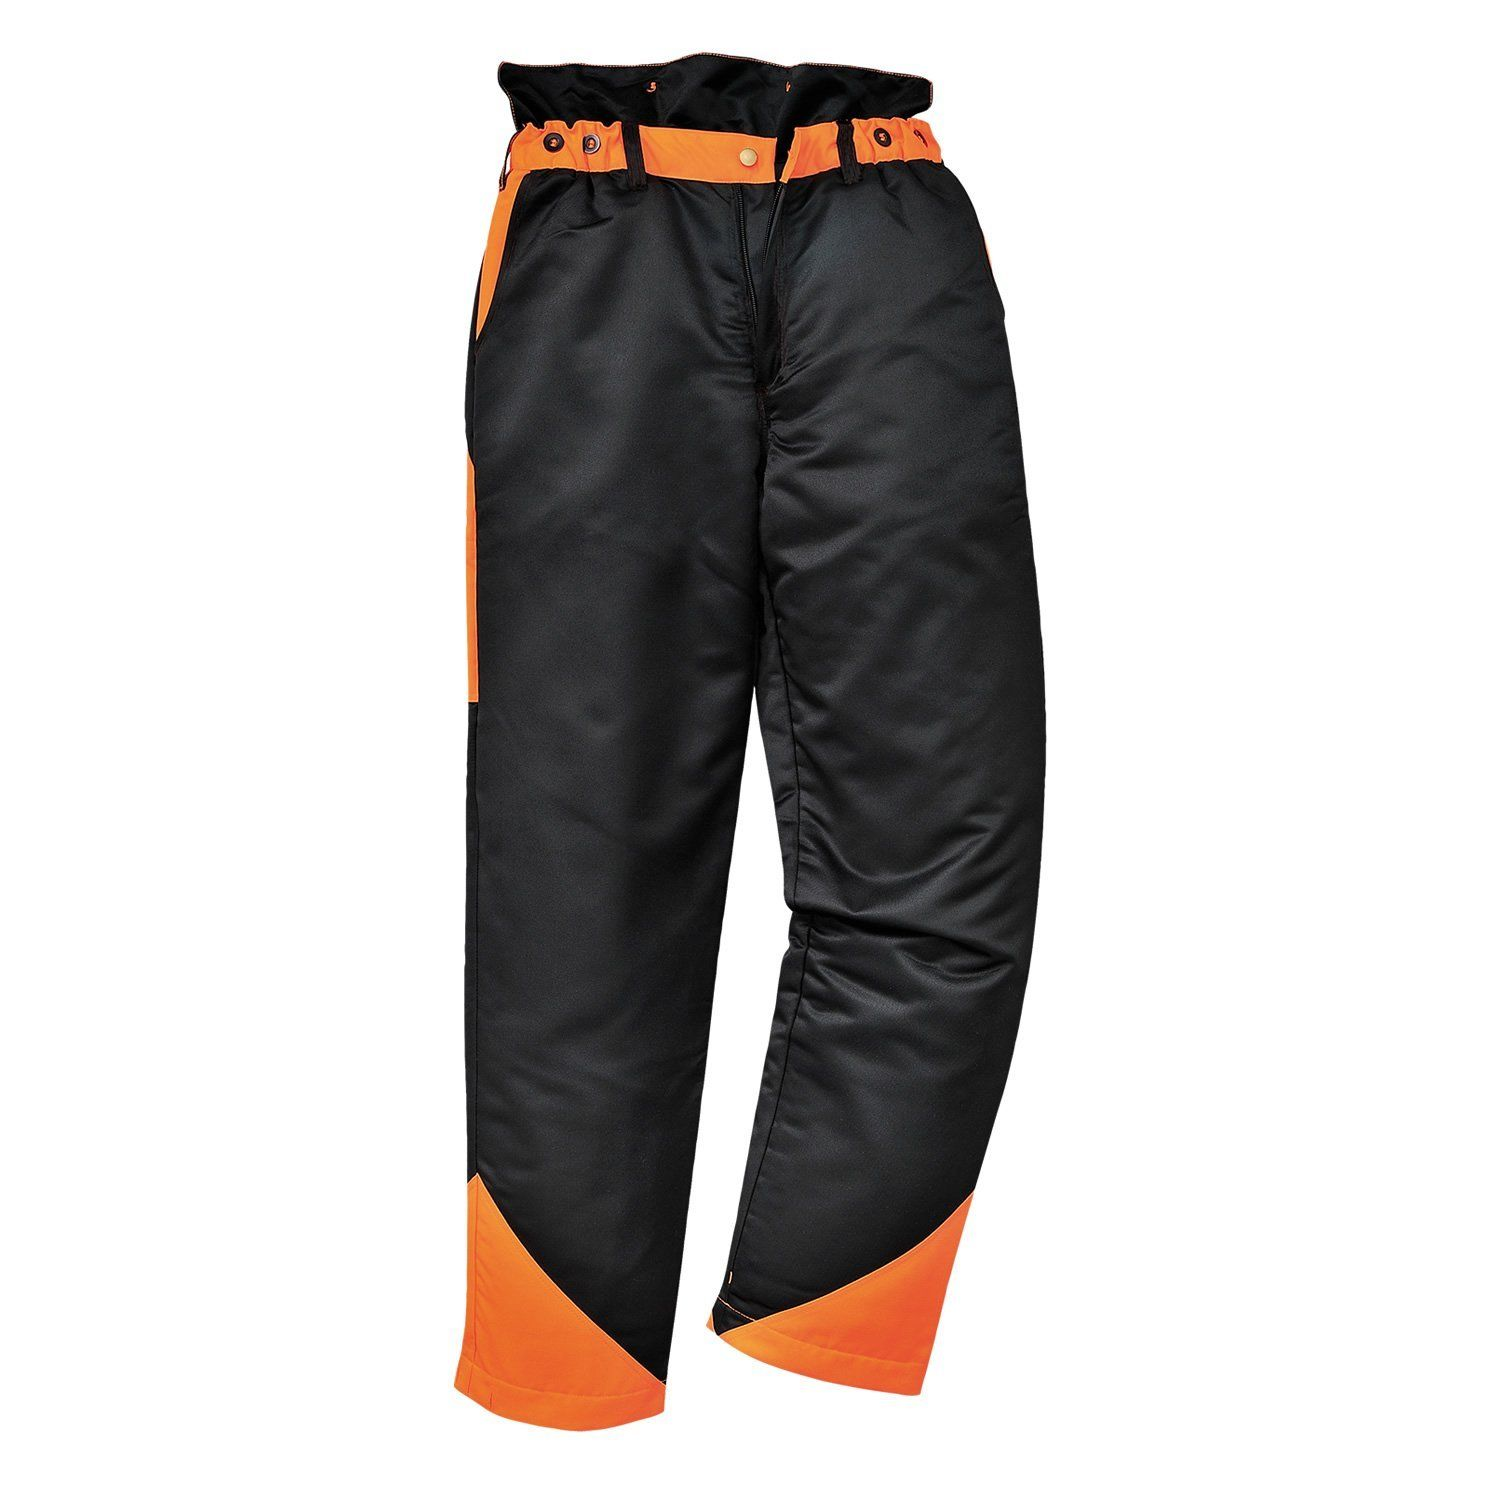 Mens portwest Black Safety Work Trousers